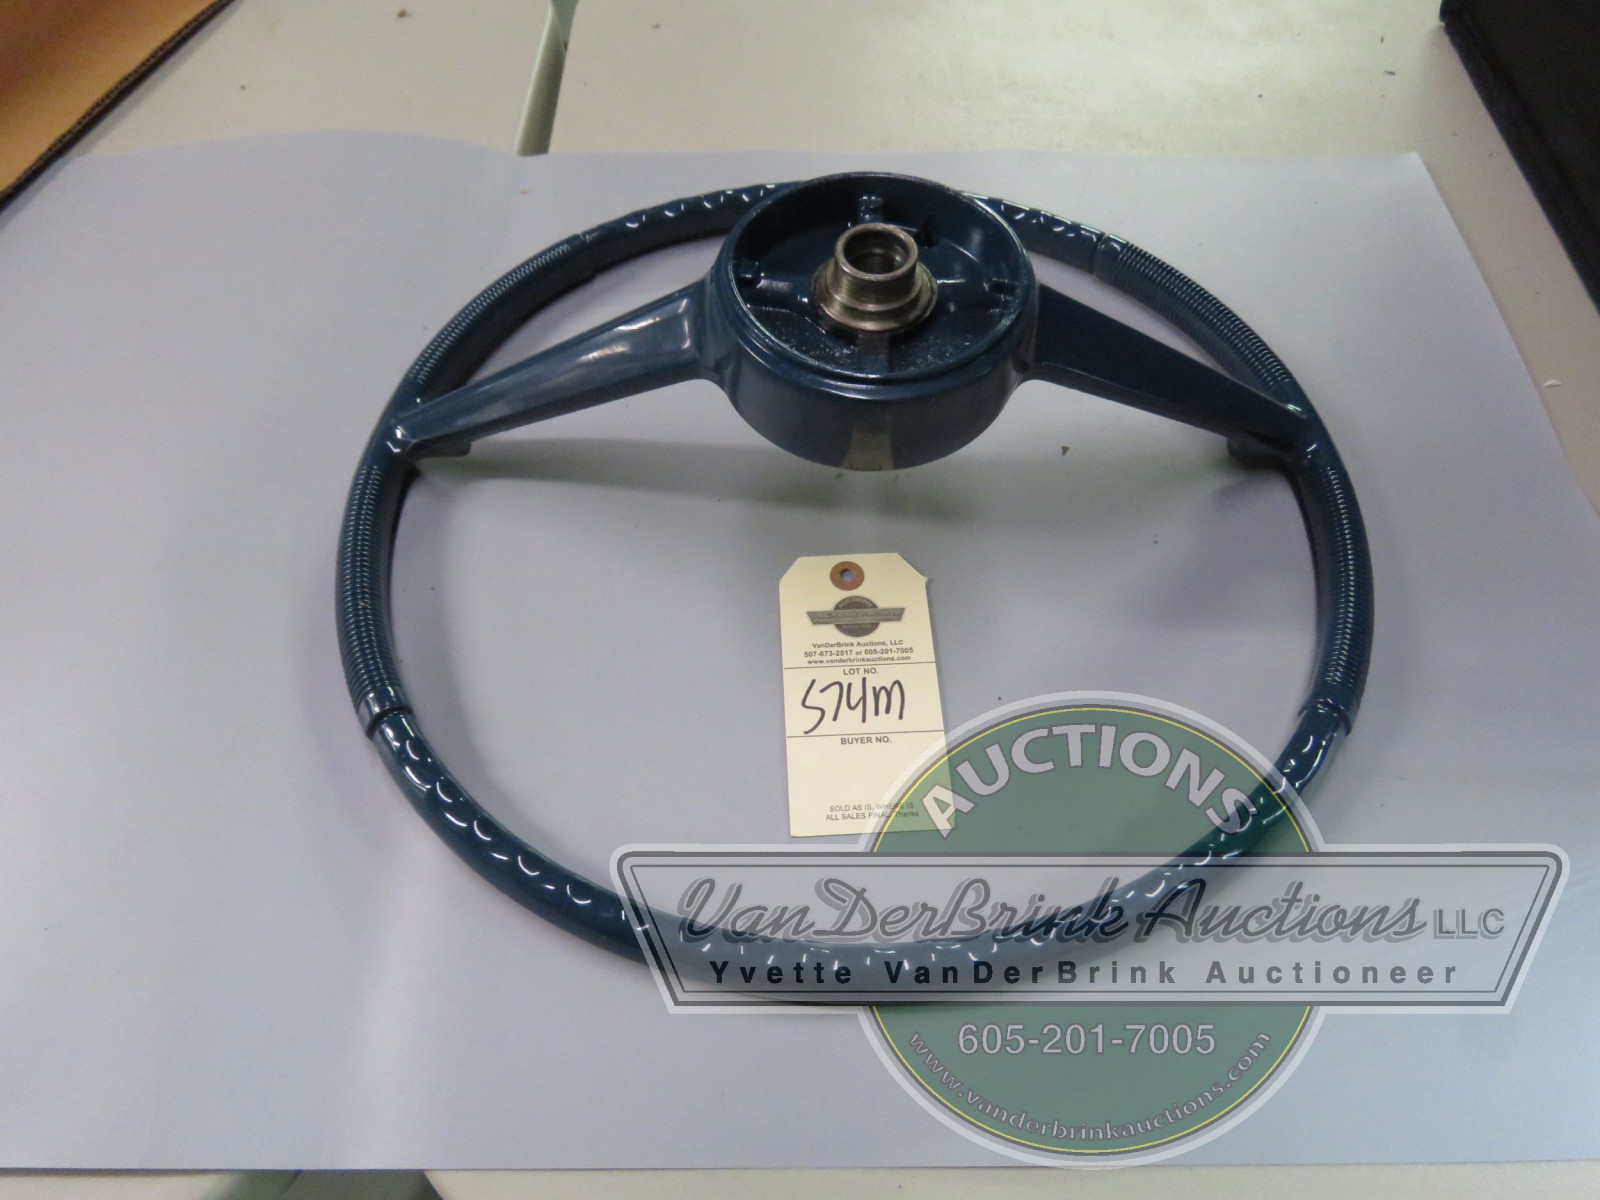 1961-66 NOS STUDEBAKER STEERING WHEEL BLUE - Image 2